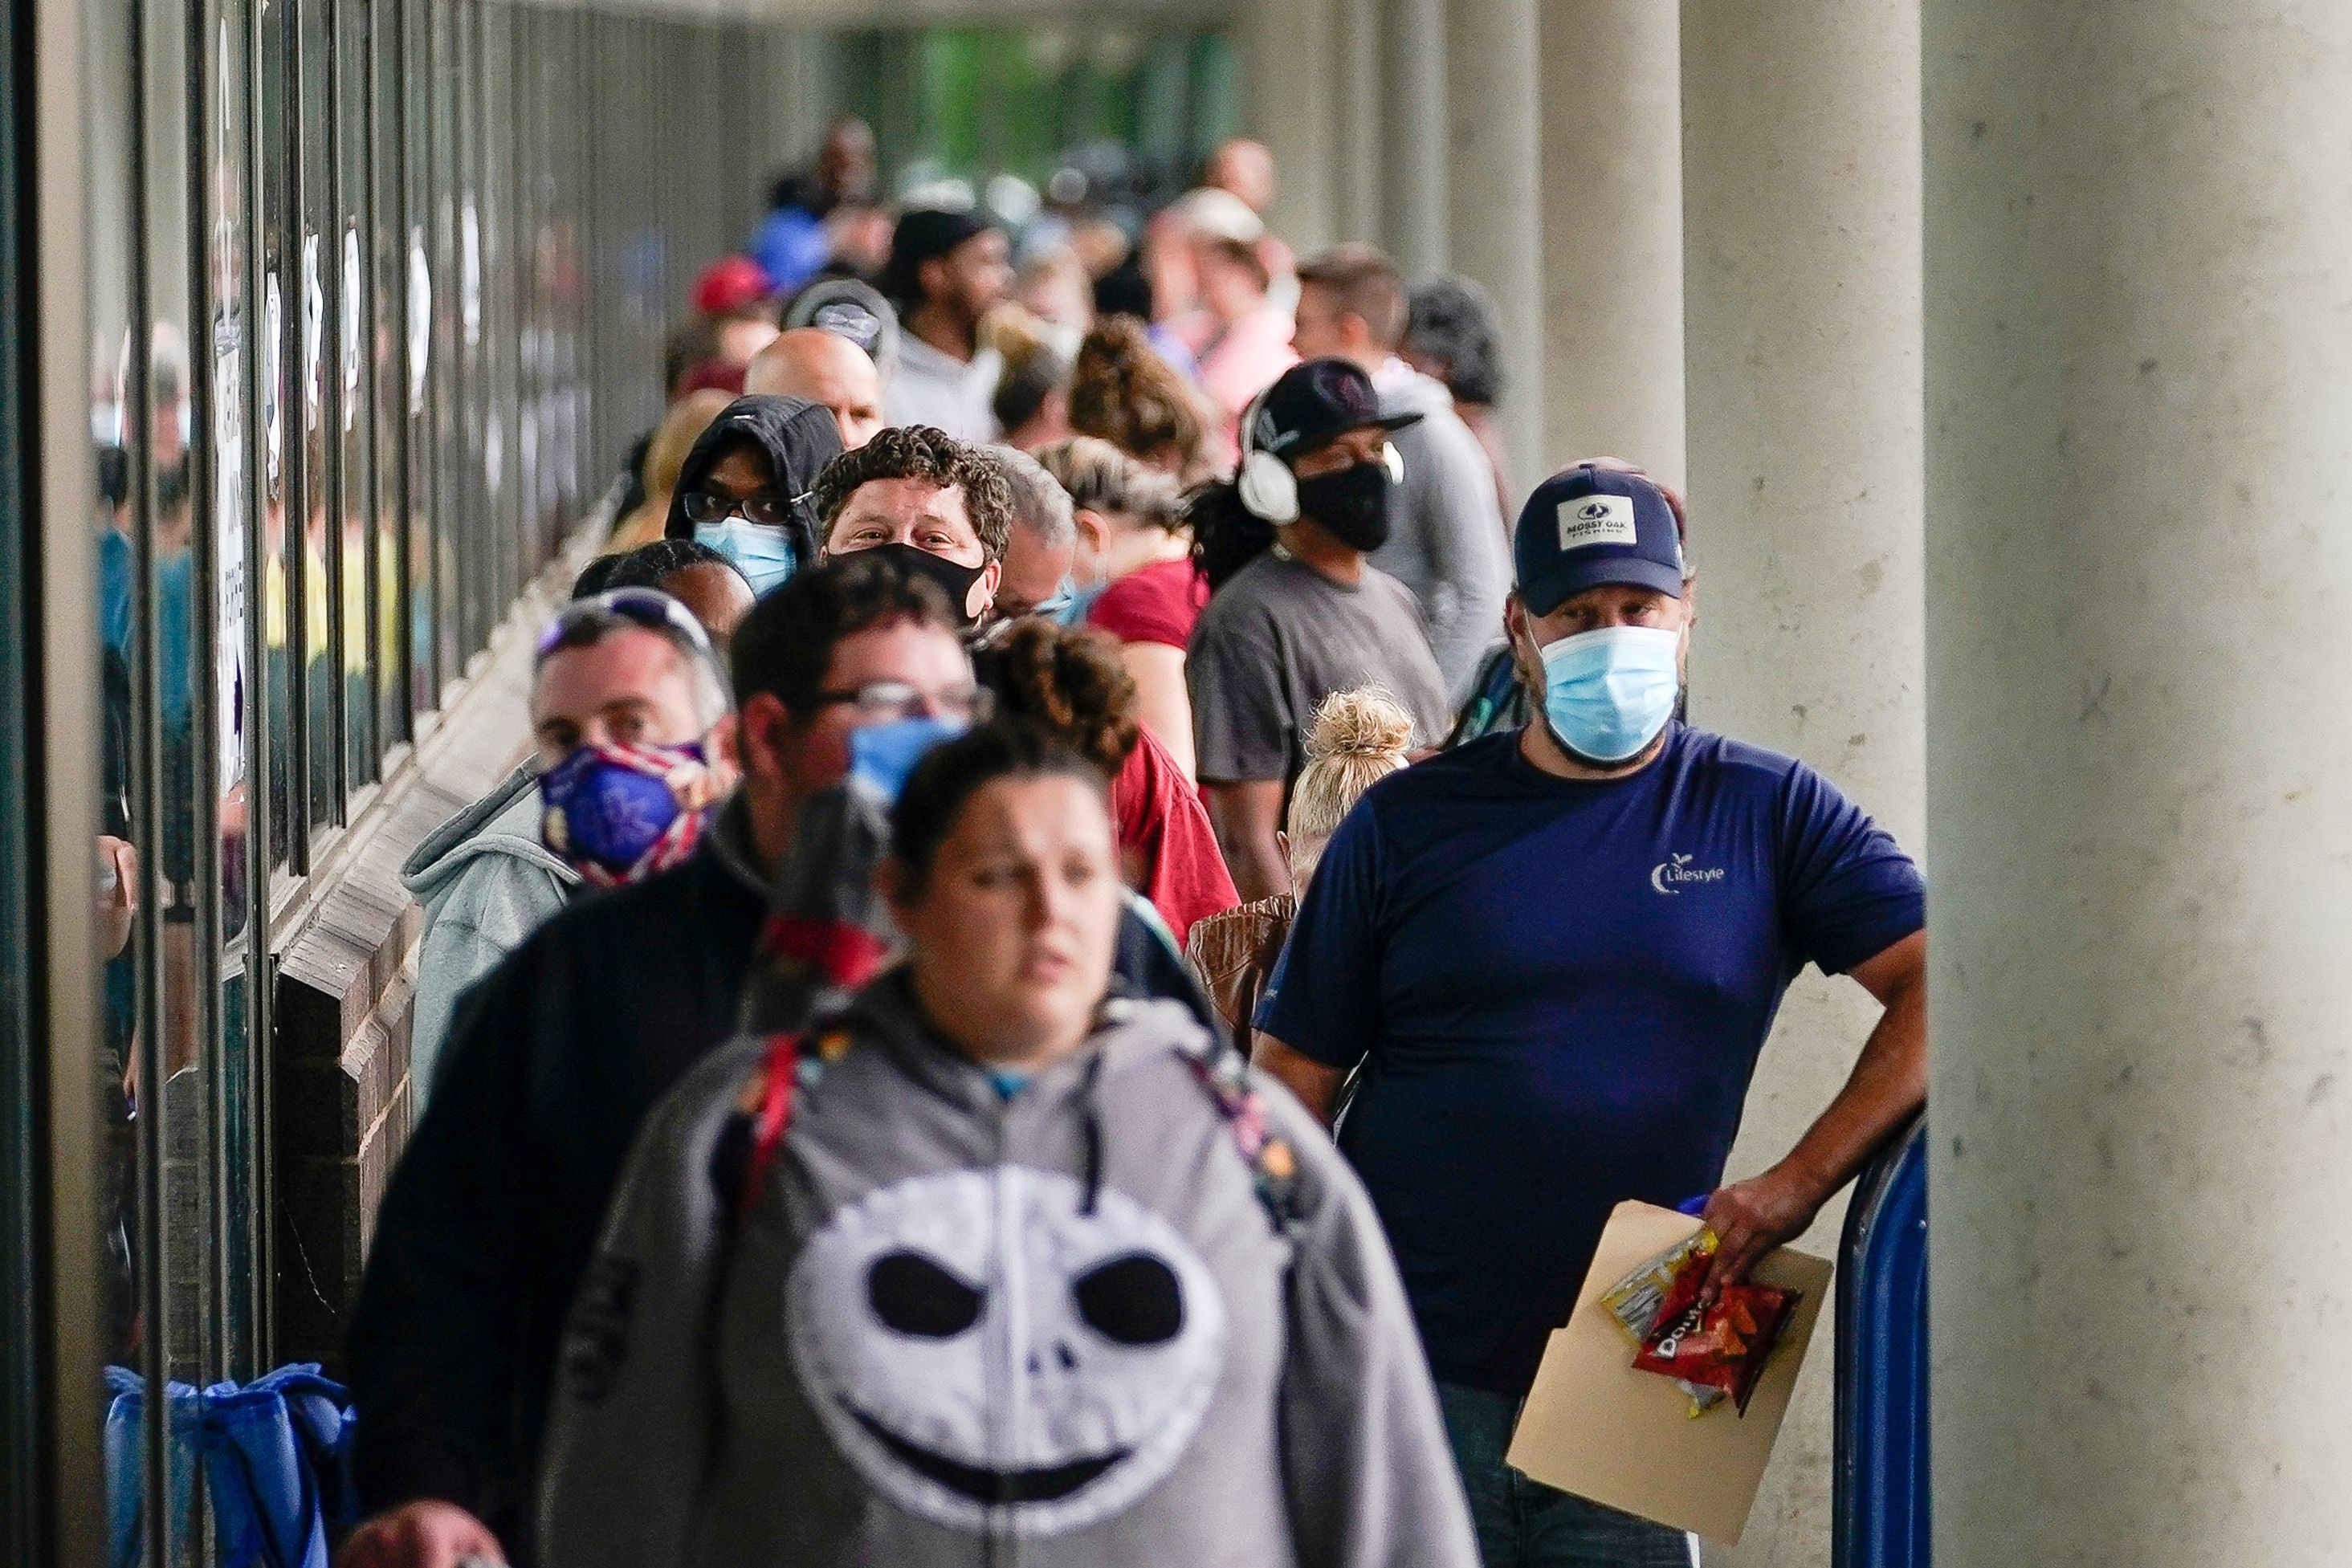 Hundreds of people line up outside a Kentucky Career Center hoping to find assistance with their unemployment claim in Frankfort, Kentucky, U.S. June 18, 2020. REUTERS/Bryan Woolston - RC2TBH9T4NMH